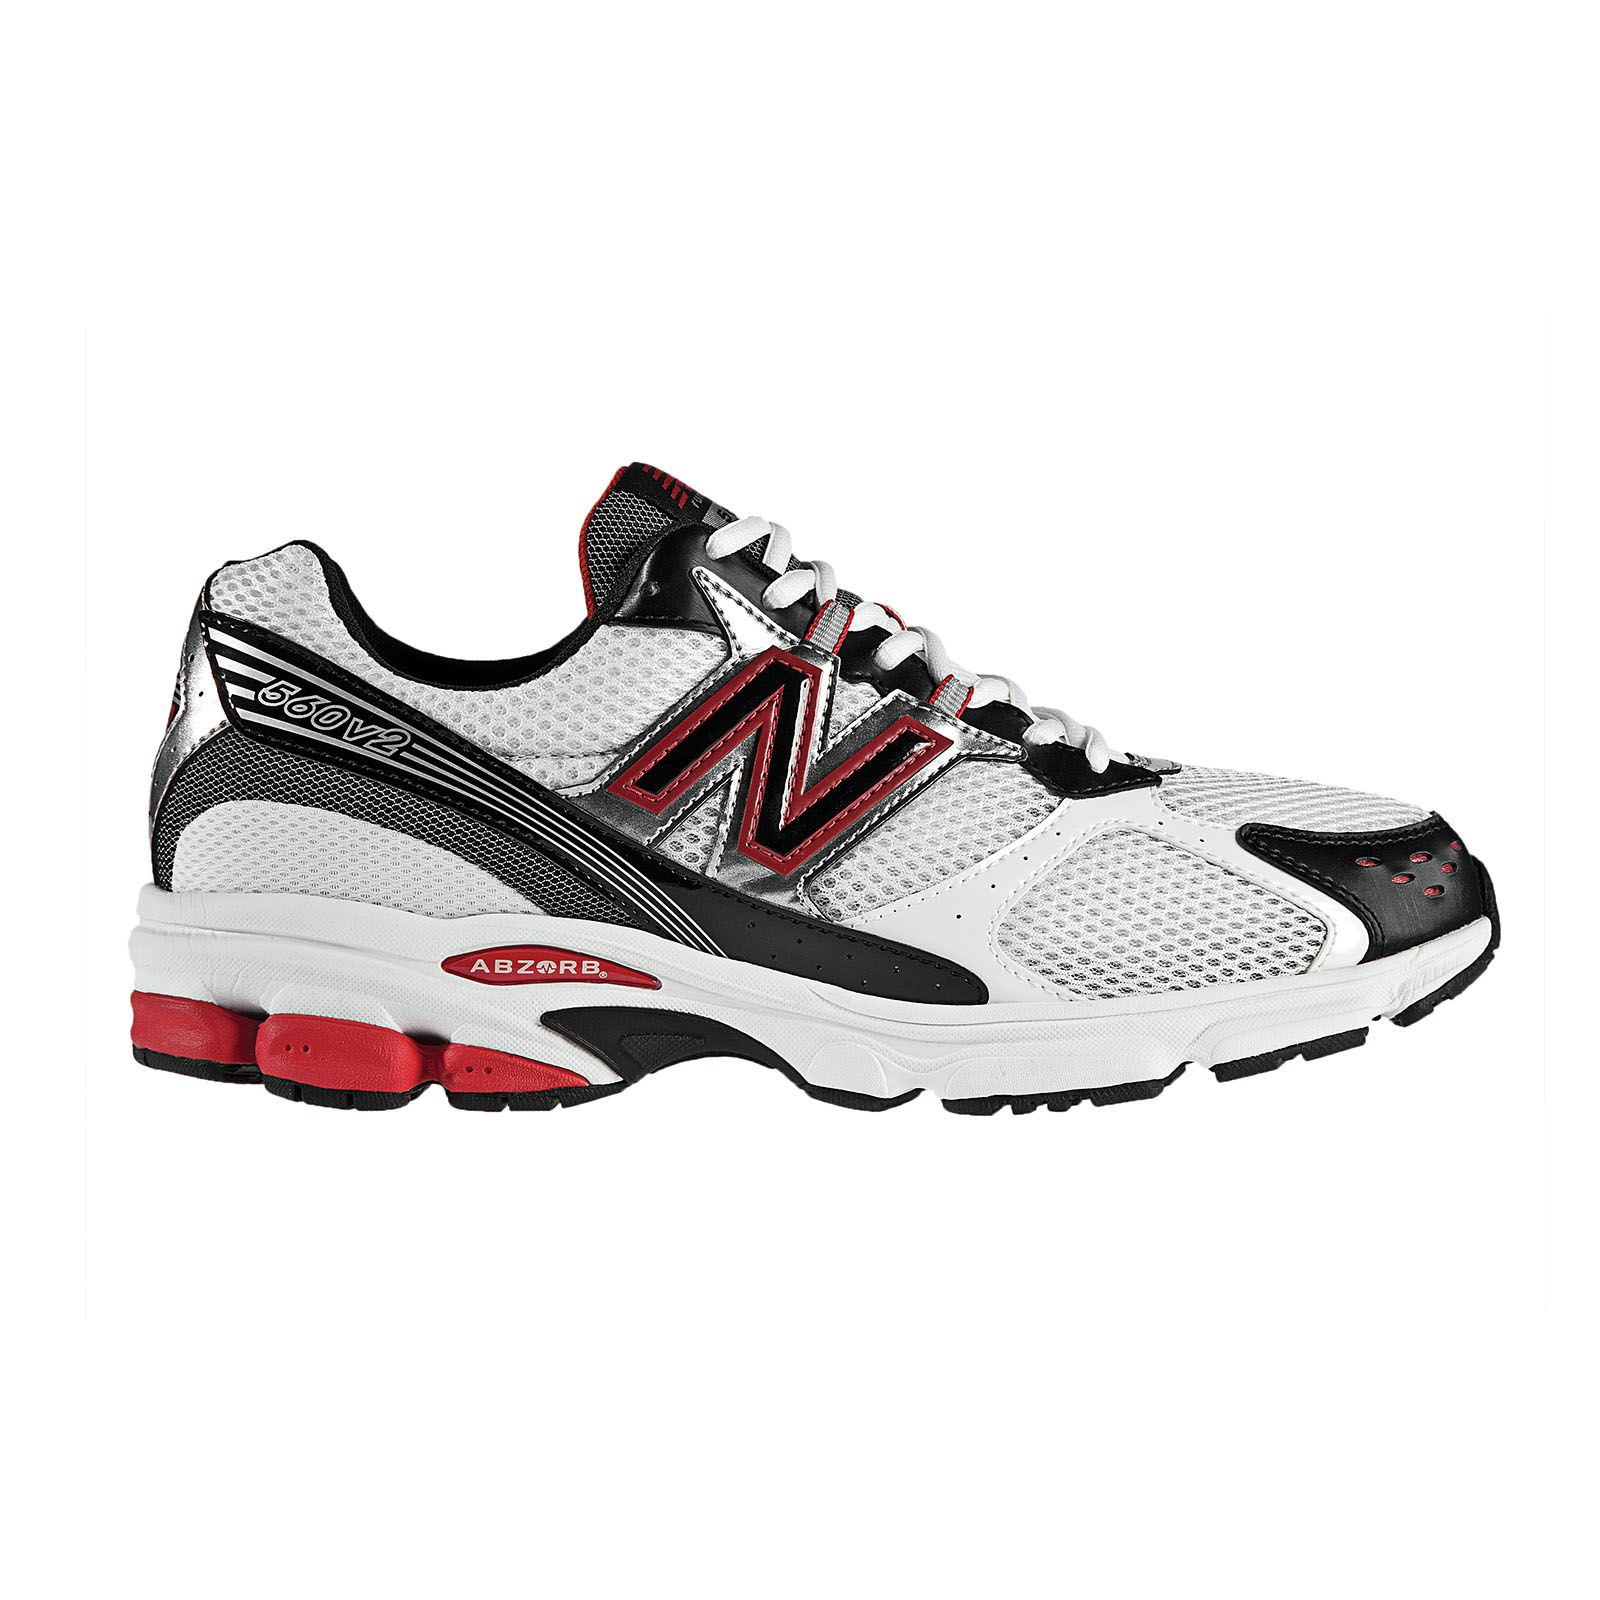 New Balance Shoes Quality